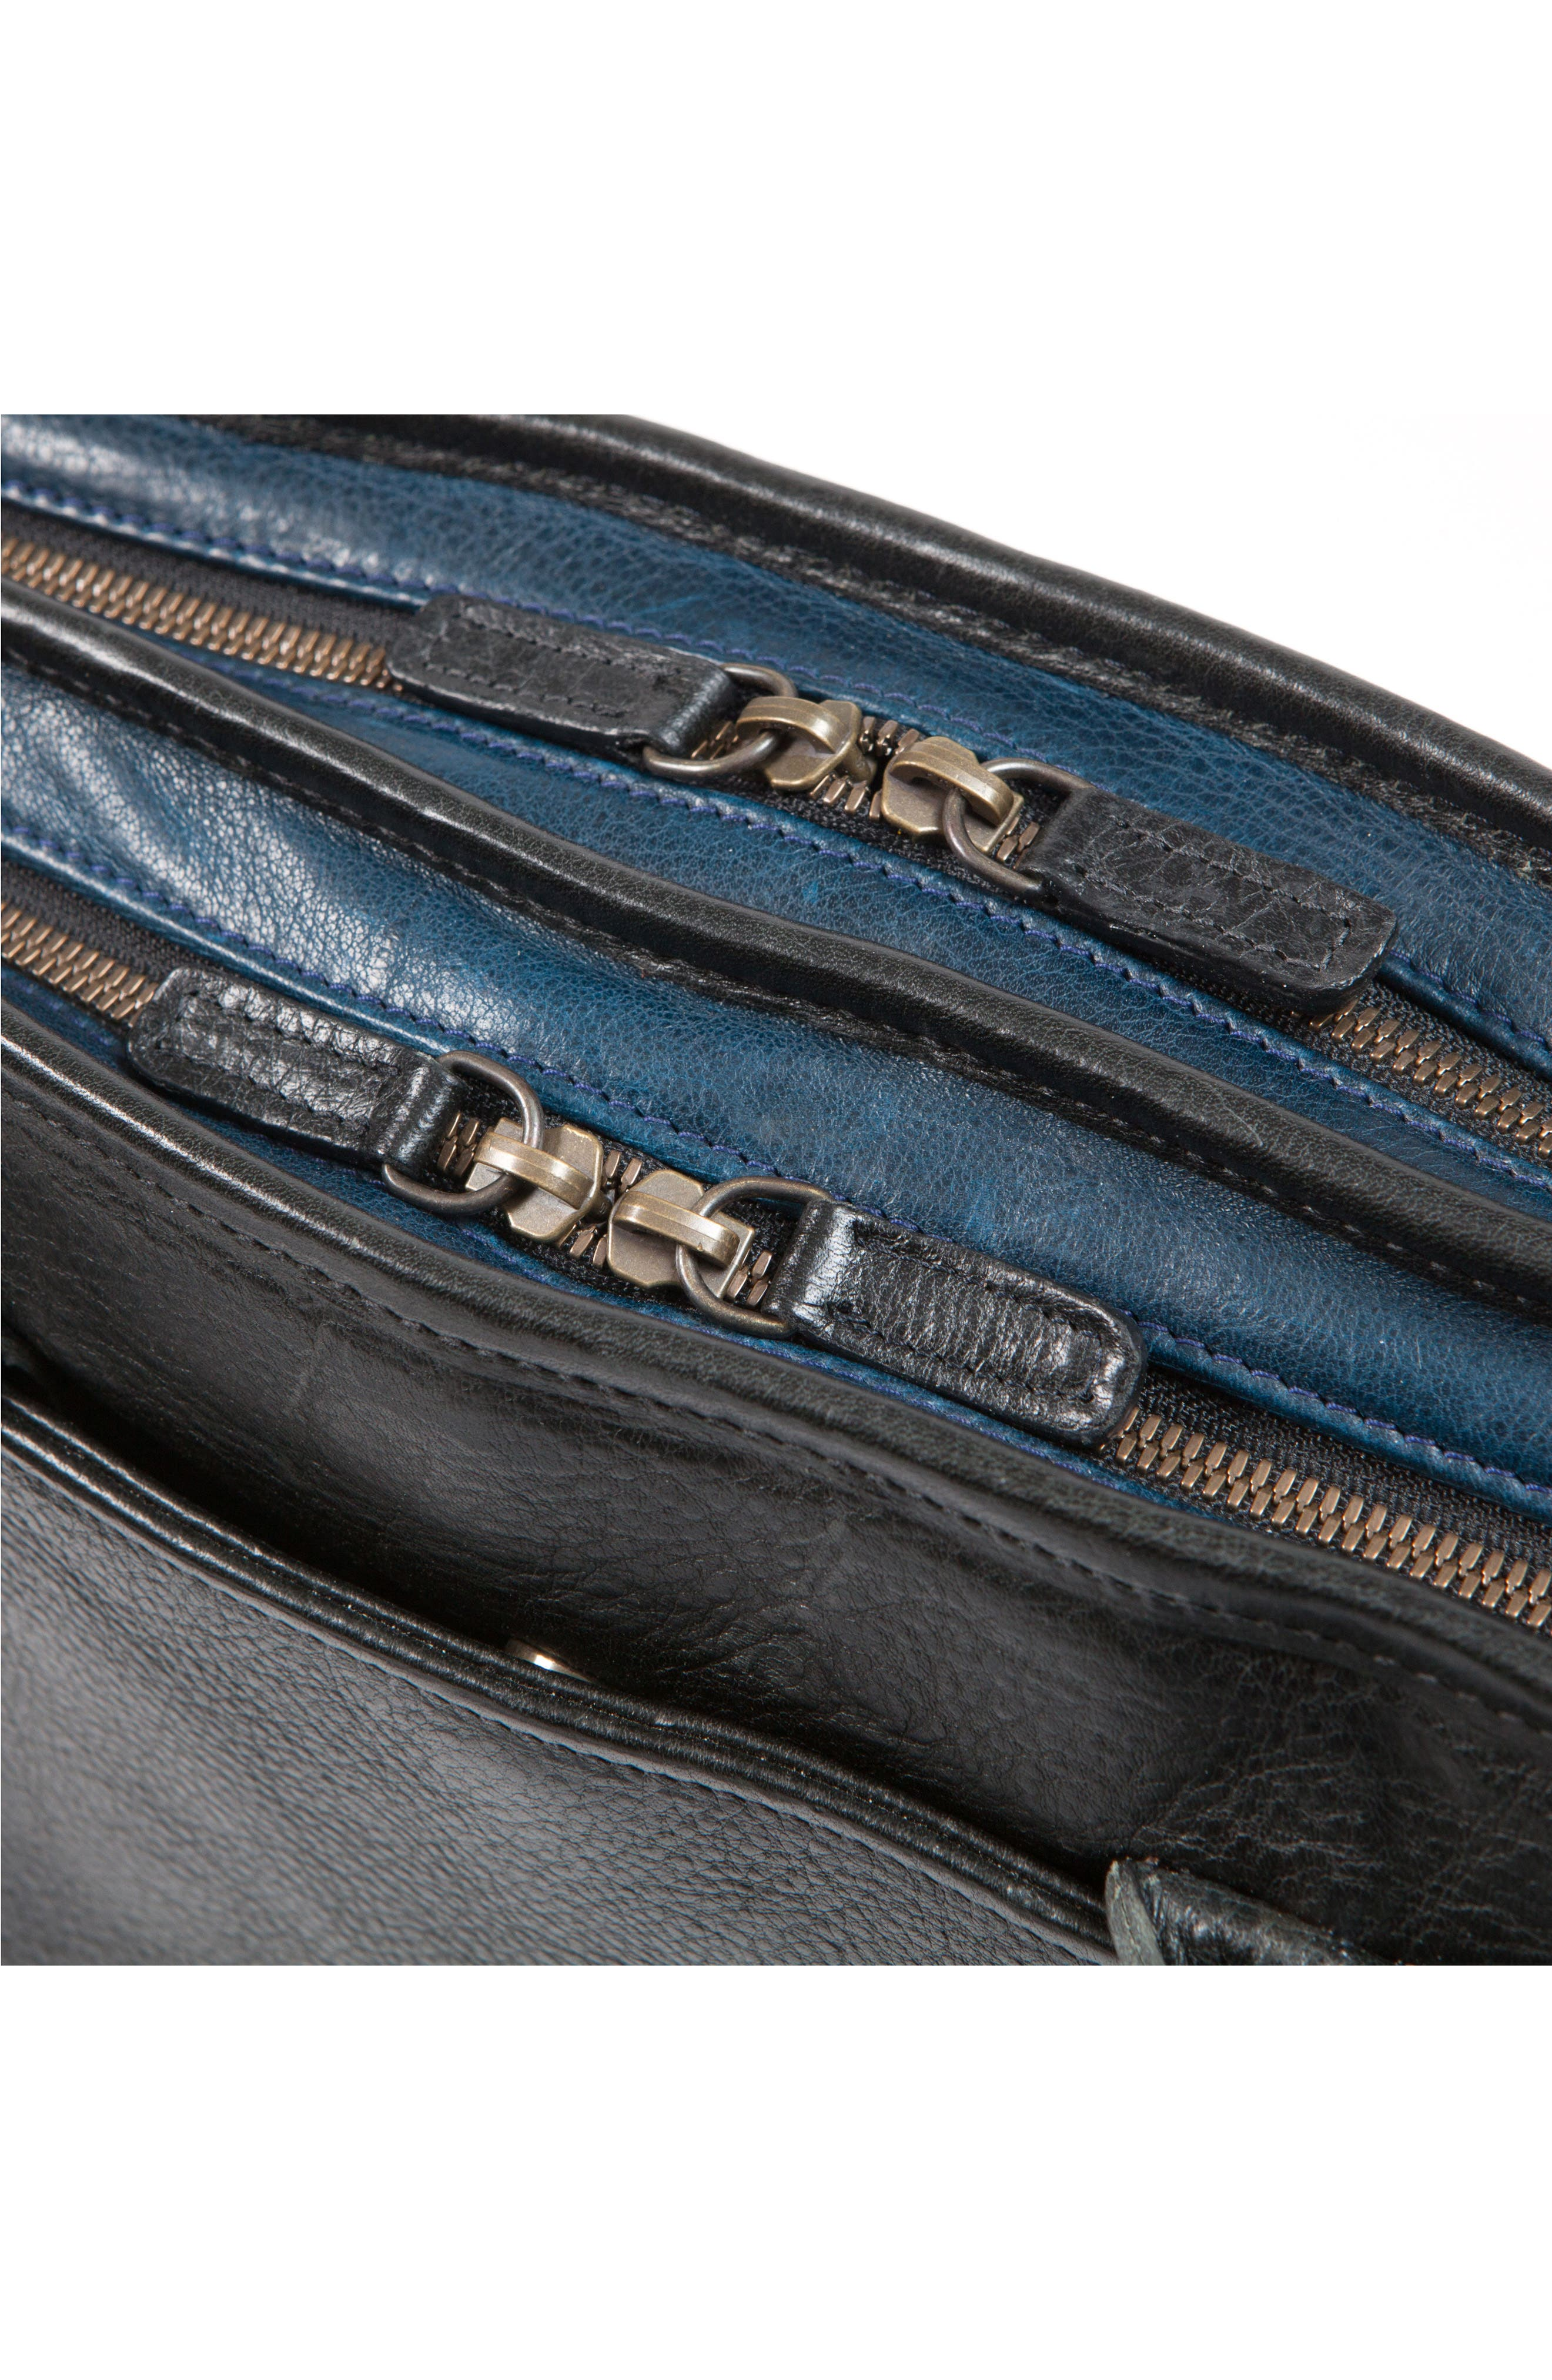 Miller Leather Briefcase,                             Alternate thumbnail 8, color,                             Titan Milled Navy And Gunmetal